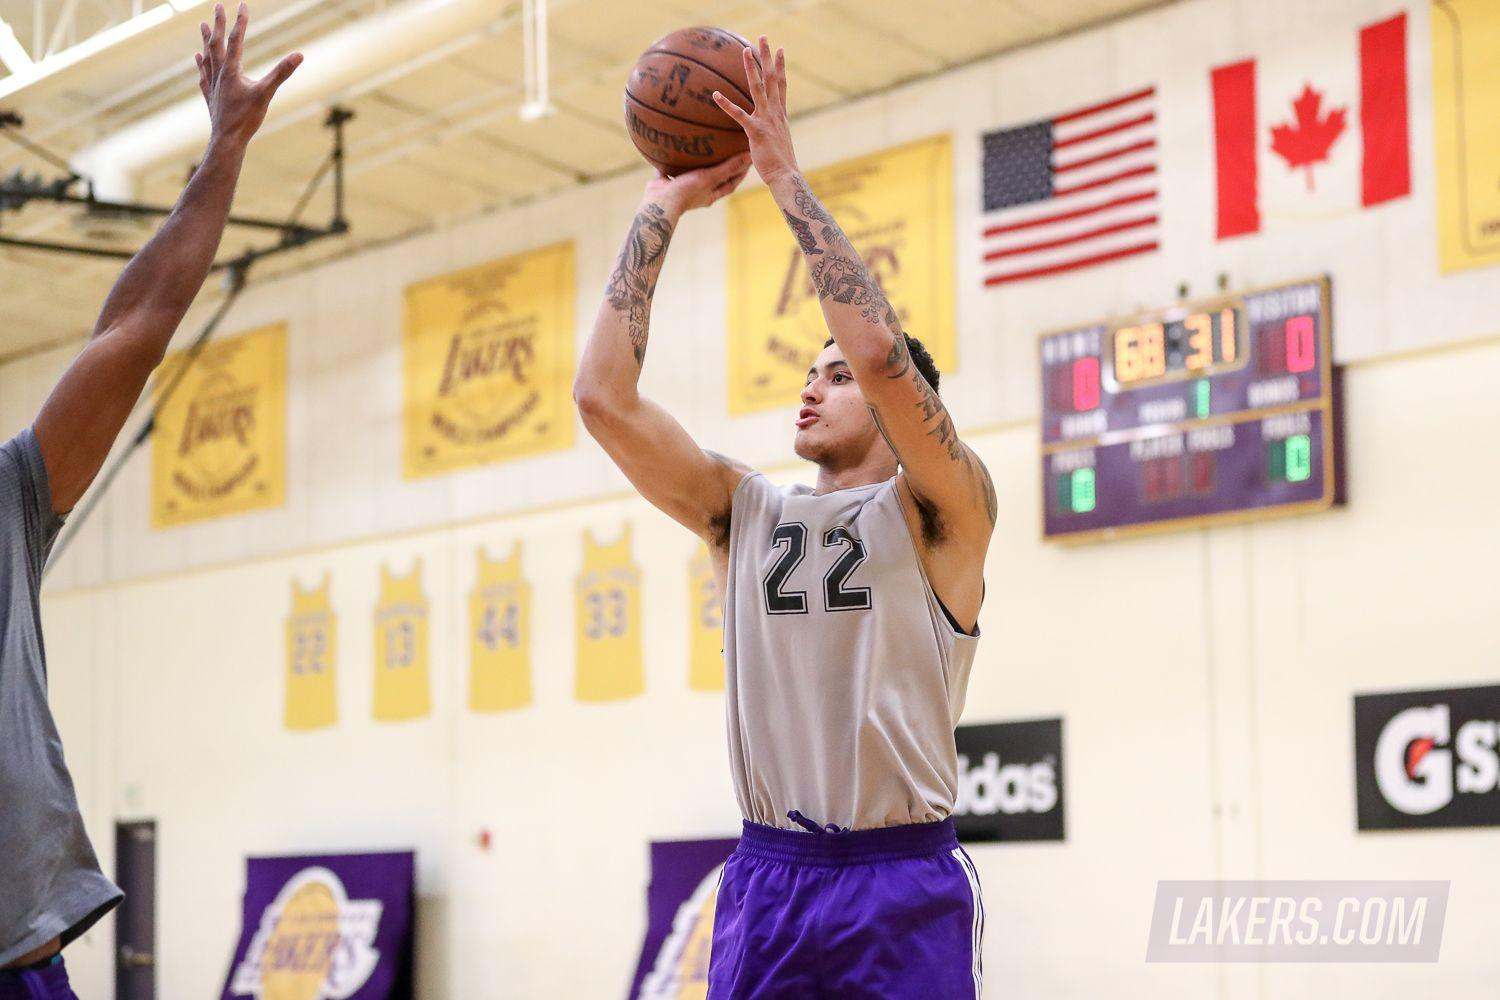 Lakers Acquire Kyle Kuzma at No. 27 | Los Angeles Lakers